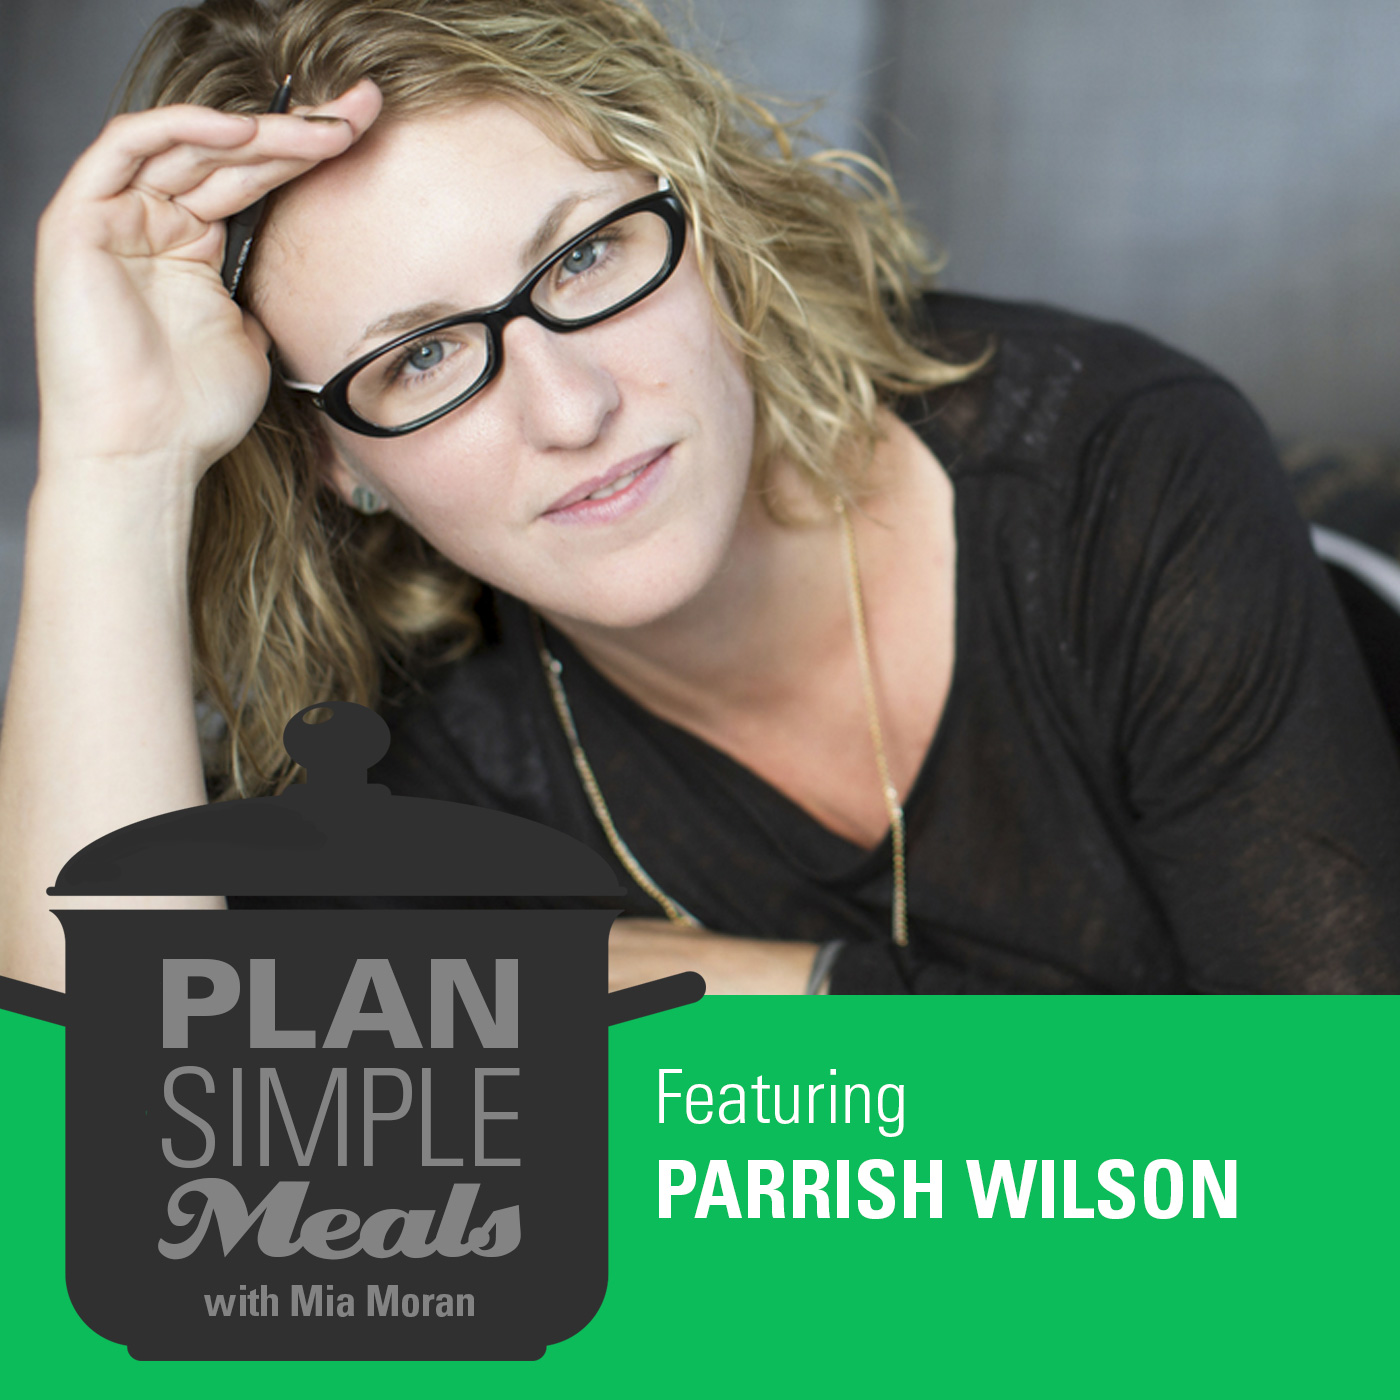 Food Is A Core Value With Parrish Wilson